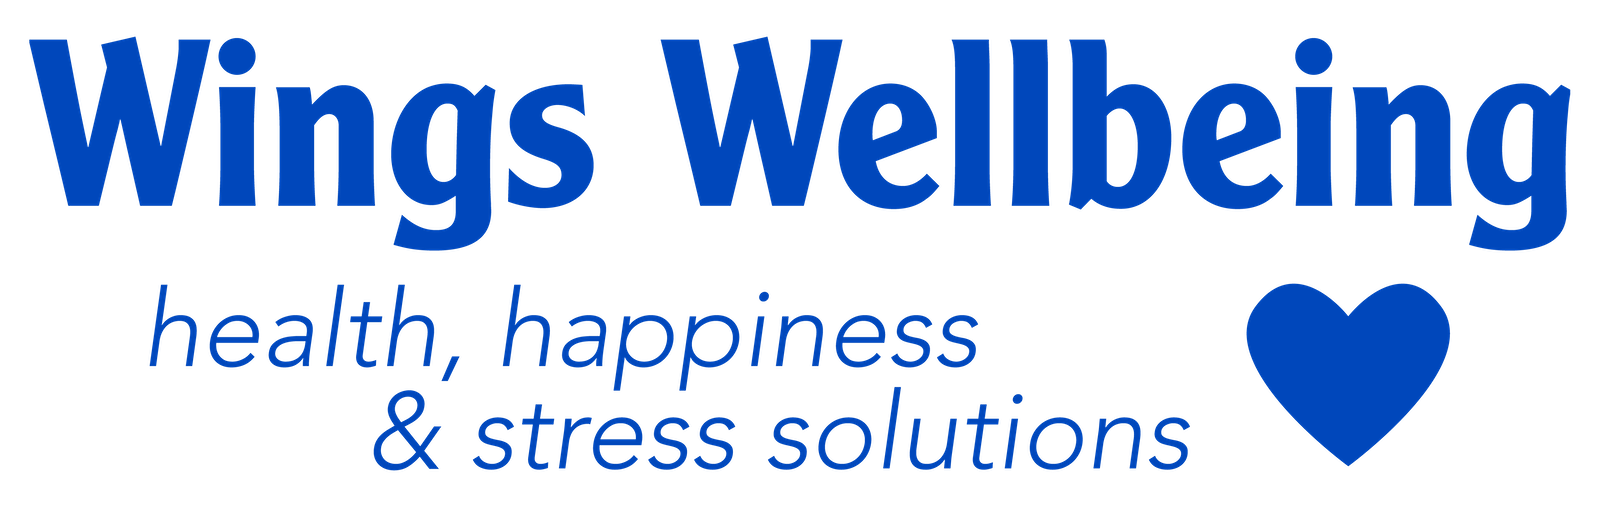 Wings Wellbeing Logo